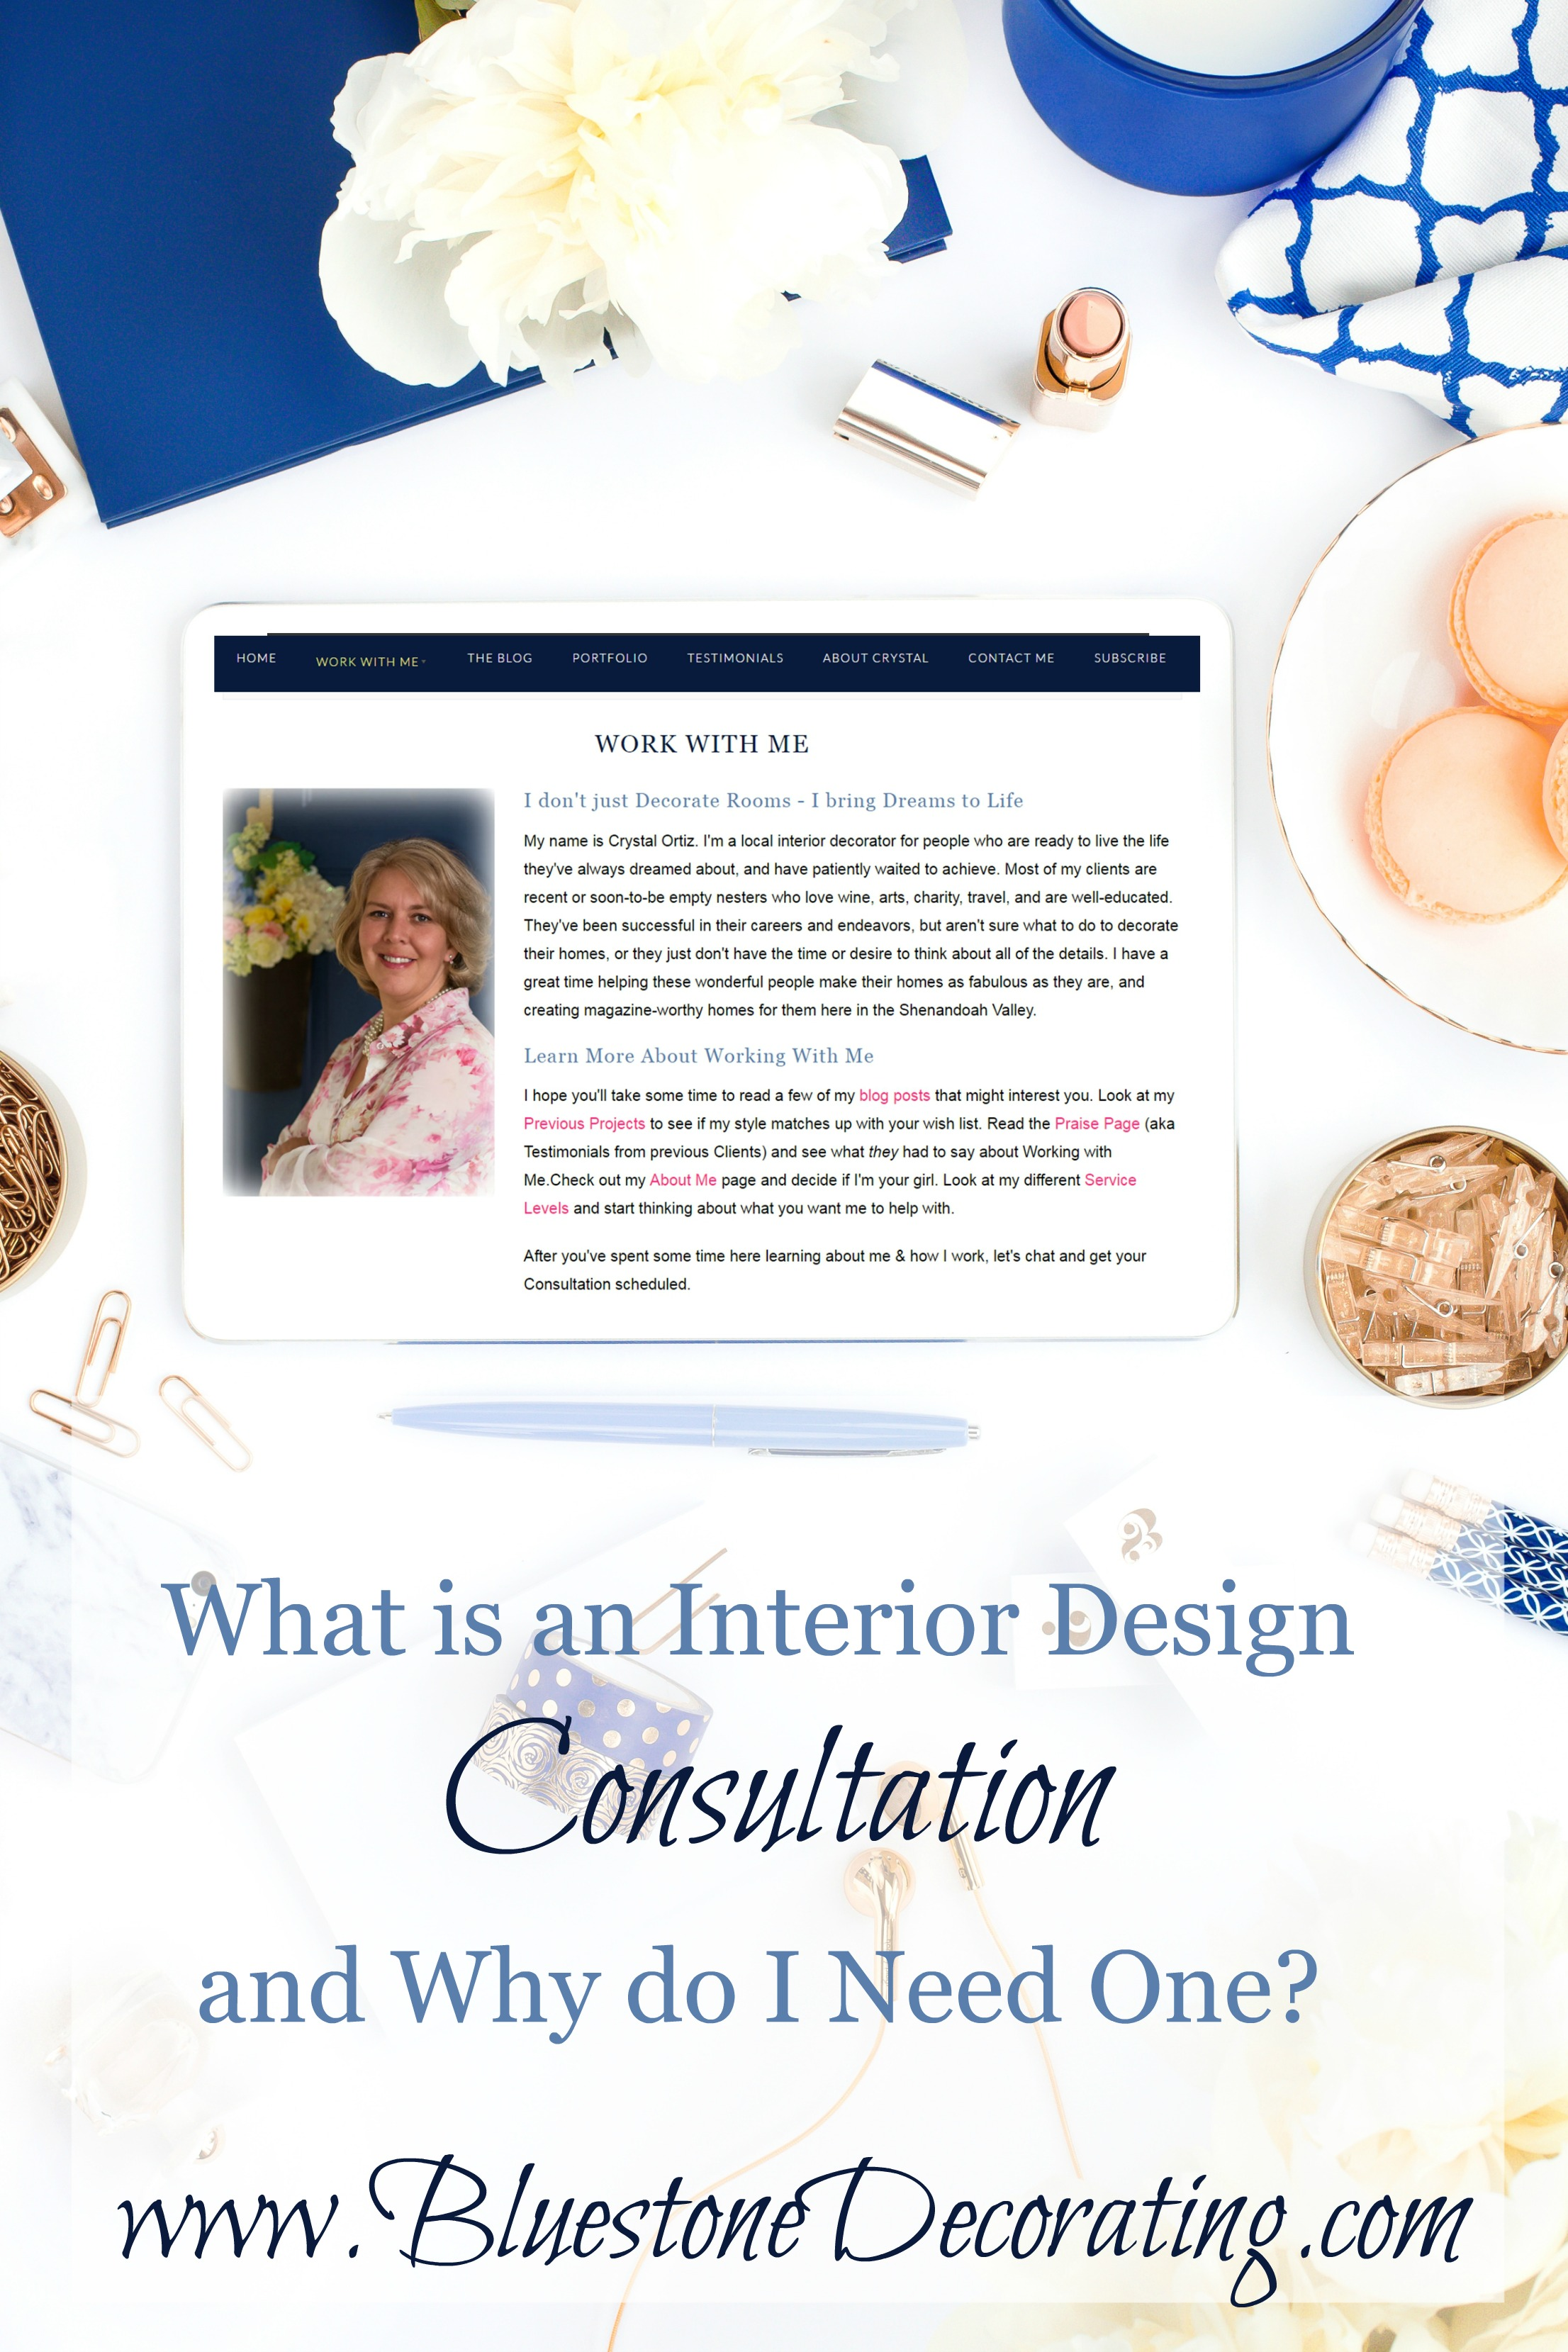 What Is An Interior Design Consultation And Why Do I Need One By Crystal Ortiz Of Bluestone Decorating